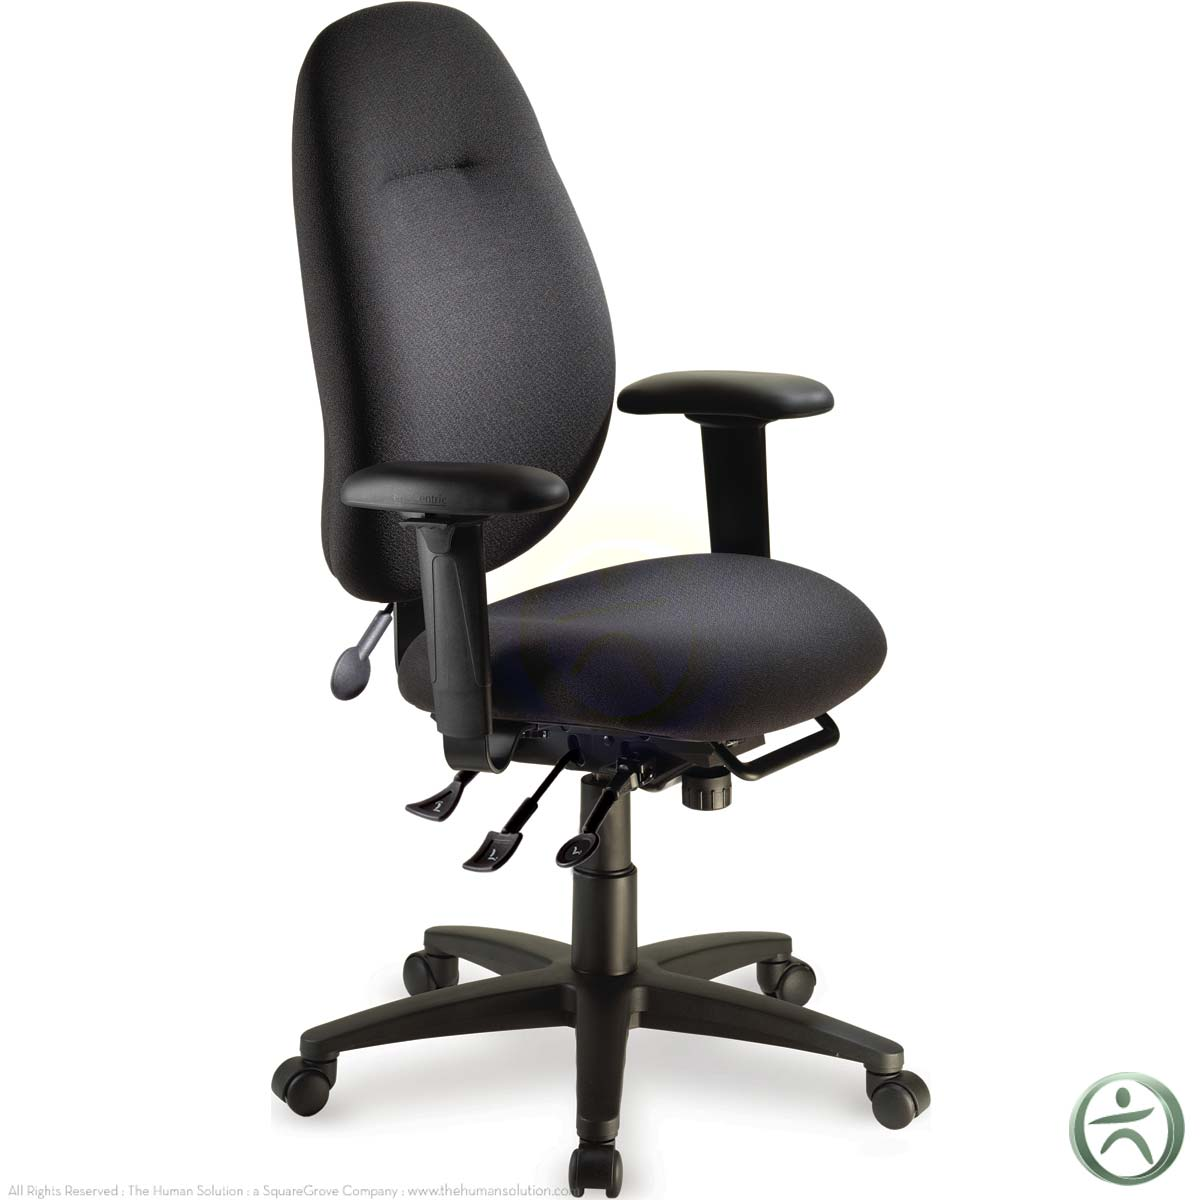 Shop Chairs Ergocentric Ecentric Ergonomic Office Chair Shop